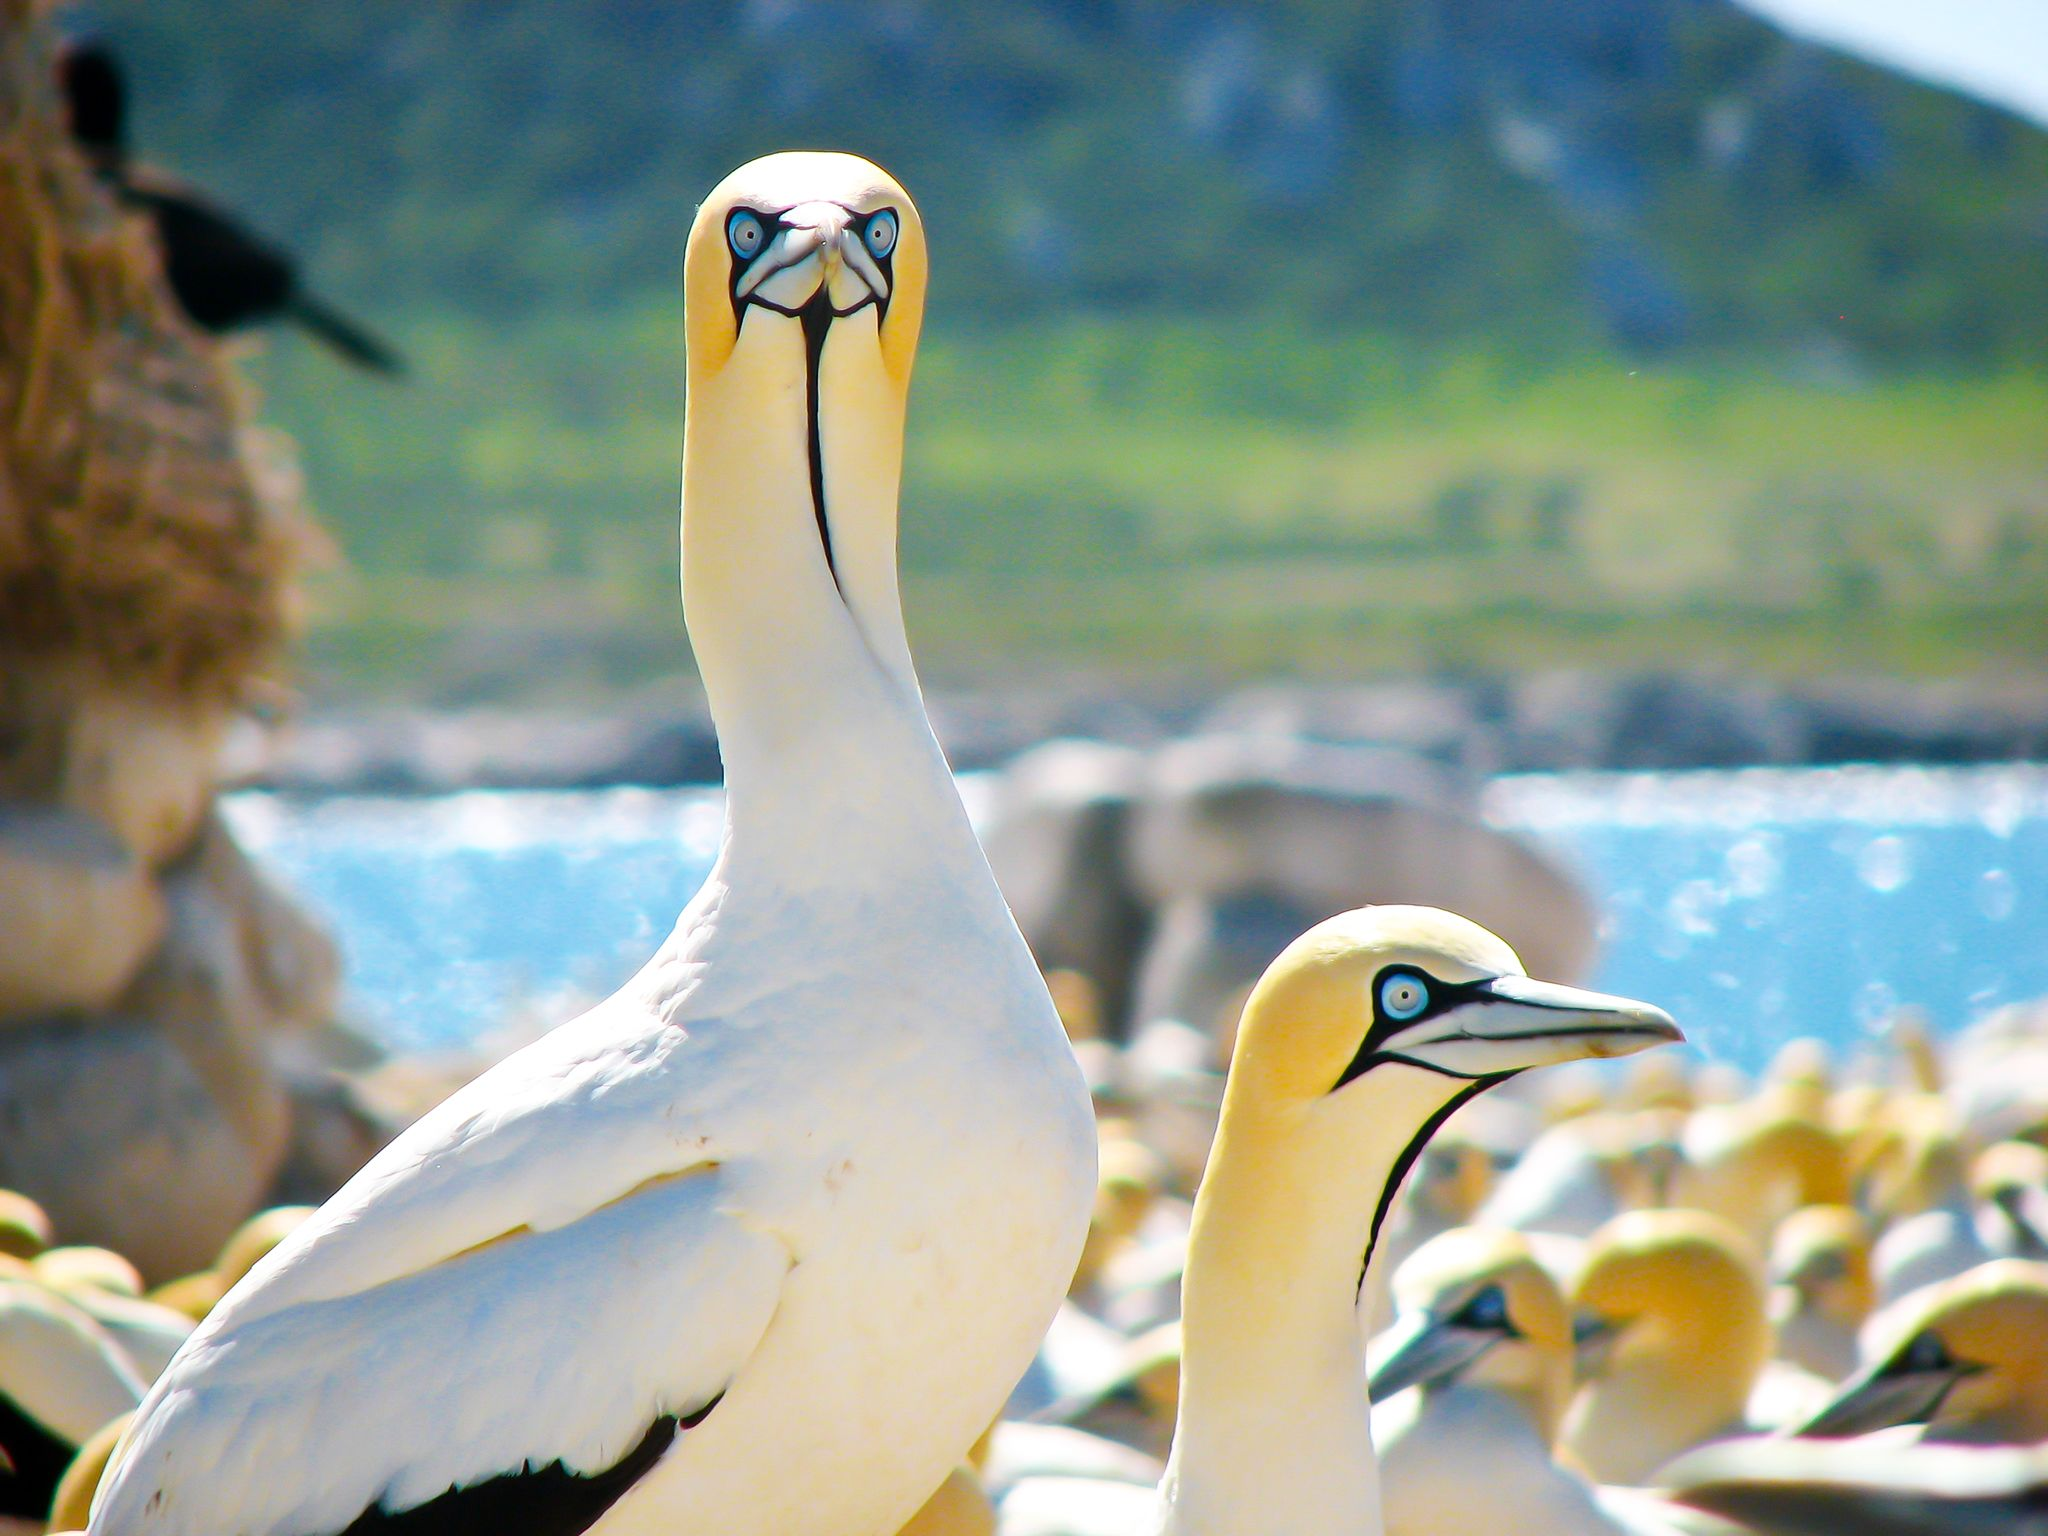 Cape Town, South Africa: Unlike most birds, the Cape Gannet's eyes are placed forward on the... [Photo of the day - January 2015]